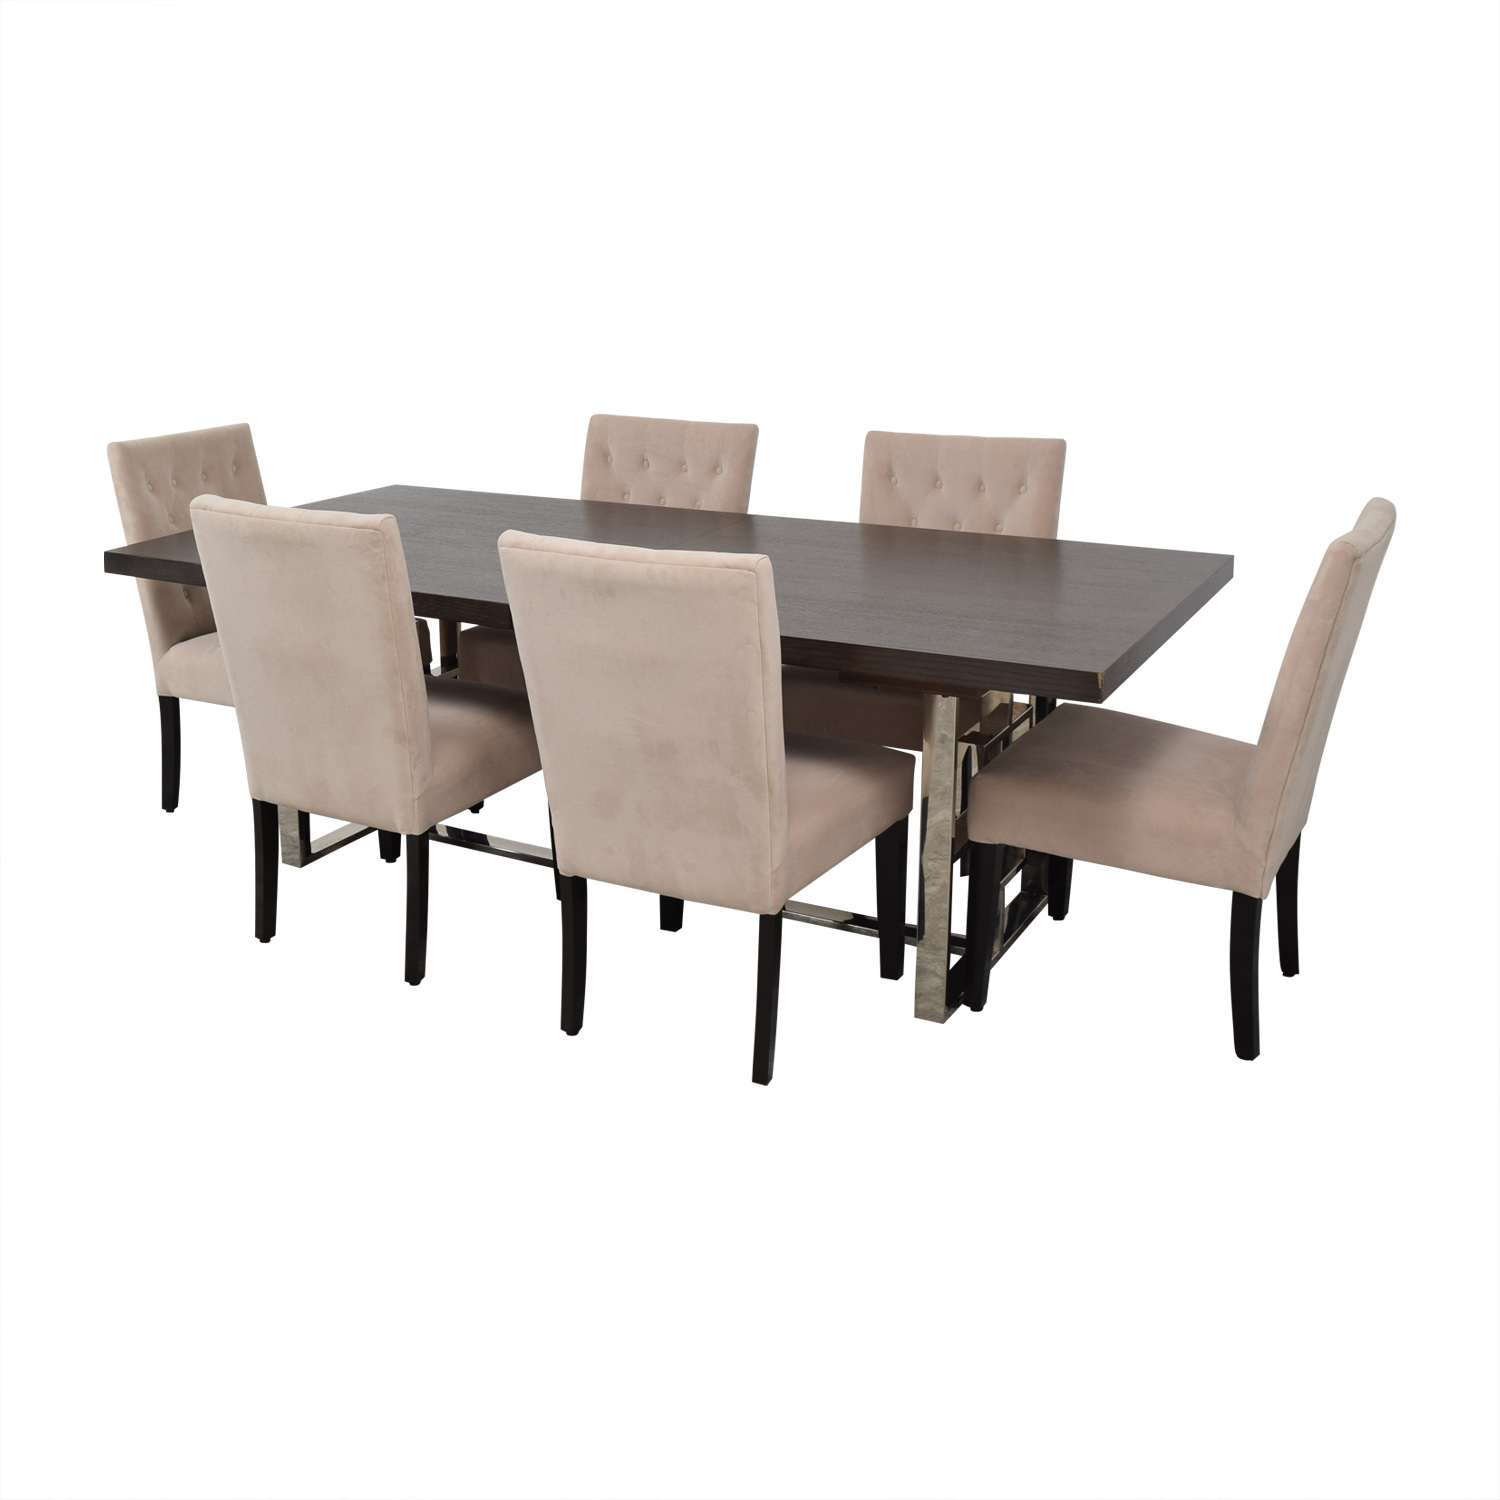 Z Gallerie Z Gallerie Rylan Extentable Dining Set with Beige Tufted Chairs dimensions